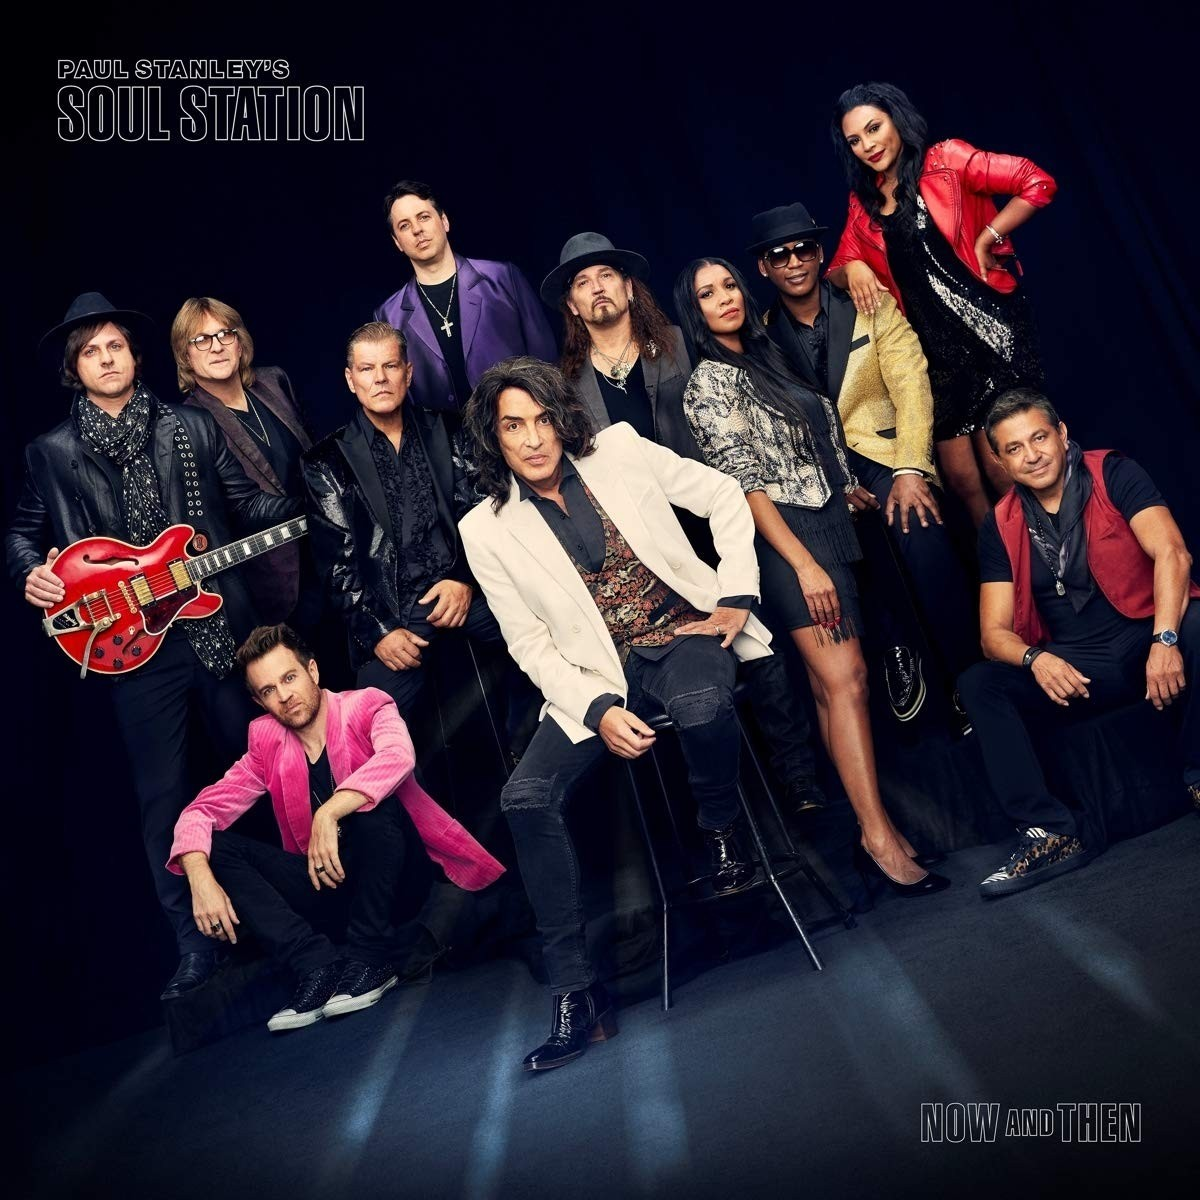 Paul Stanley's Soul Station - Now And Then